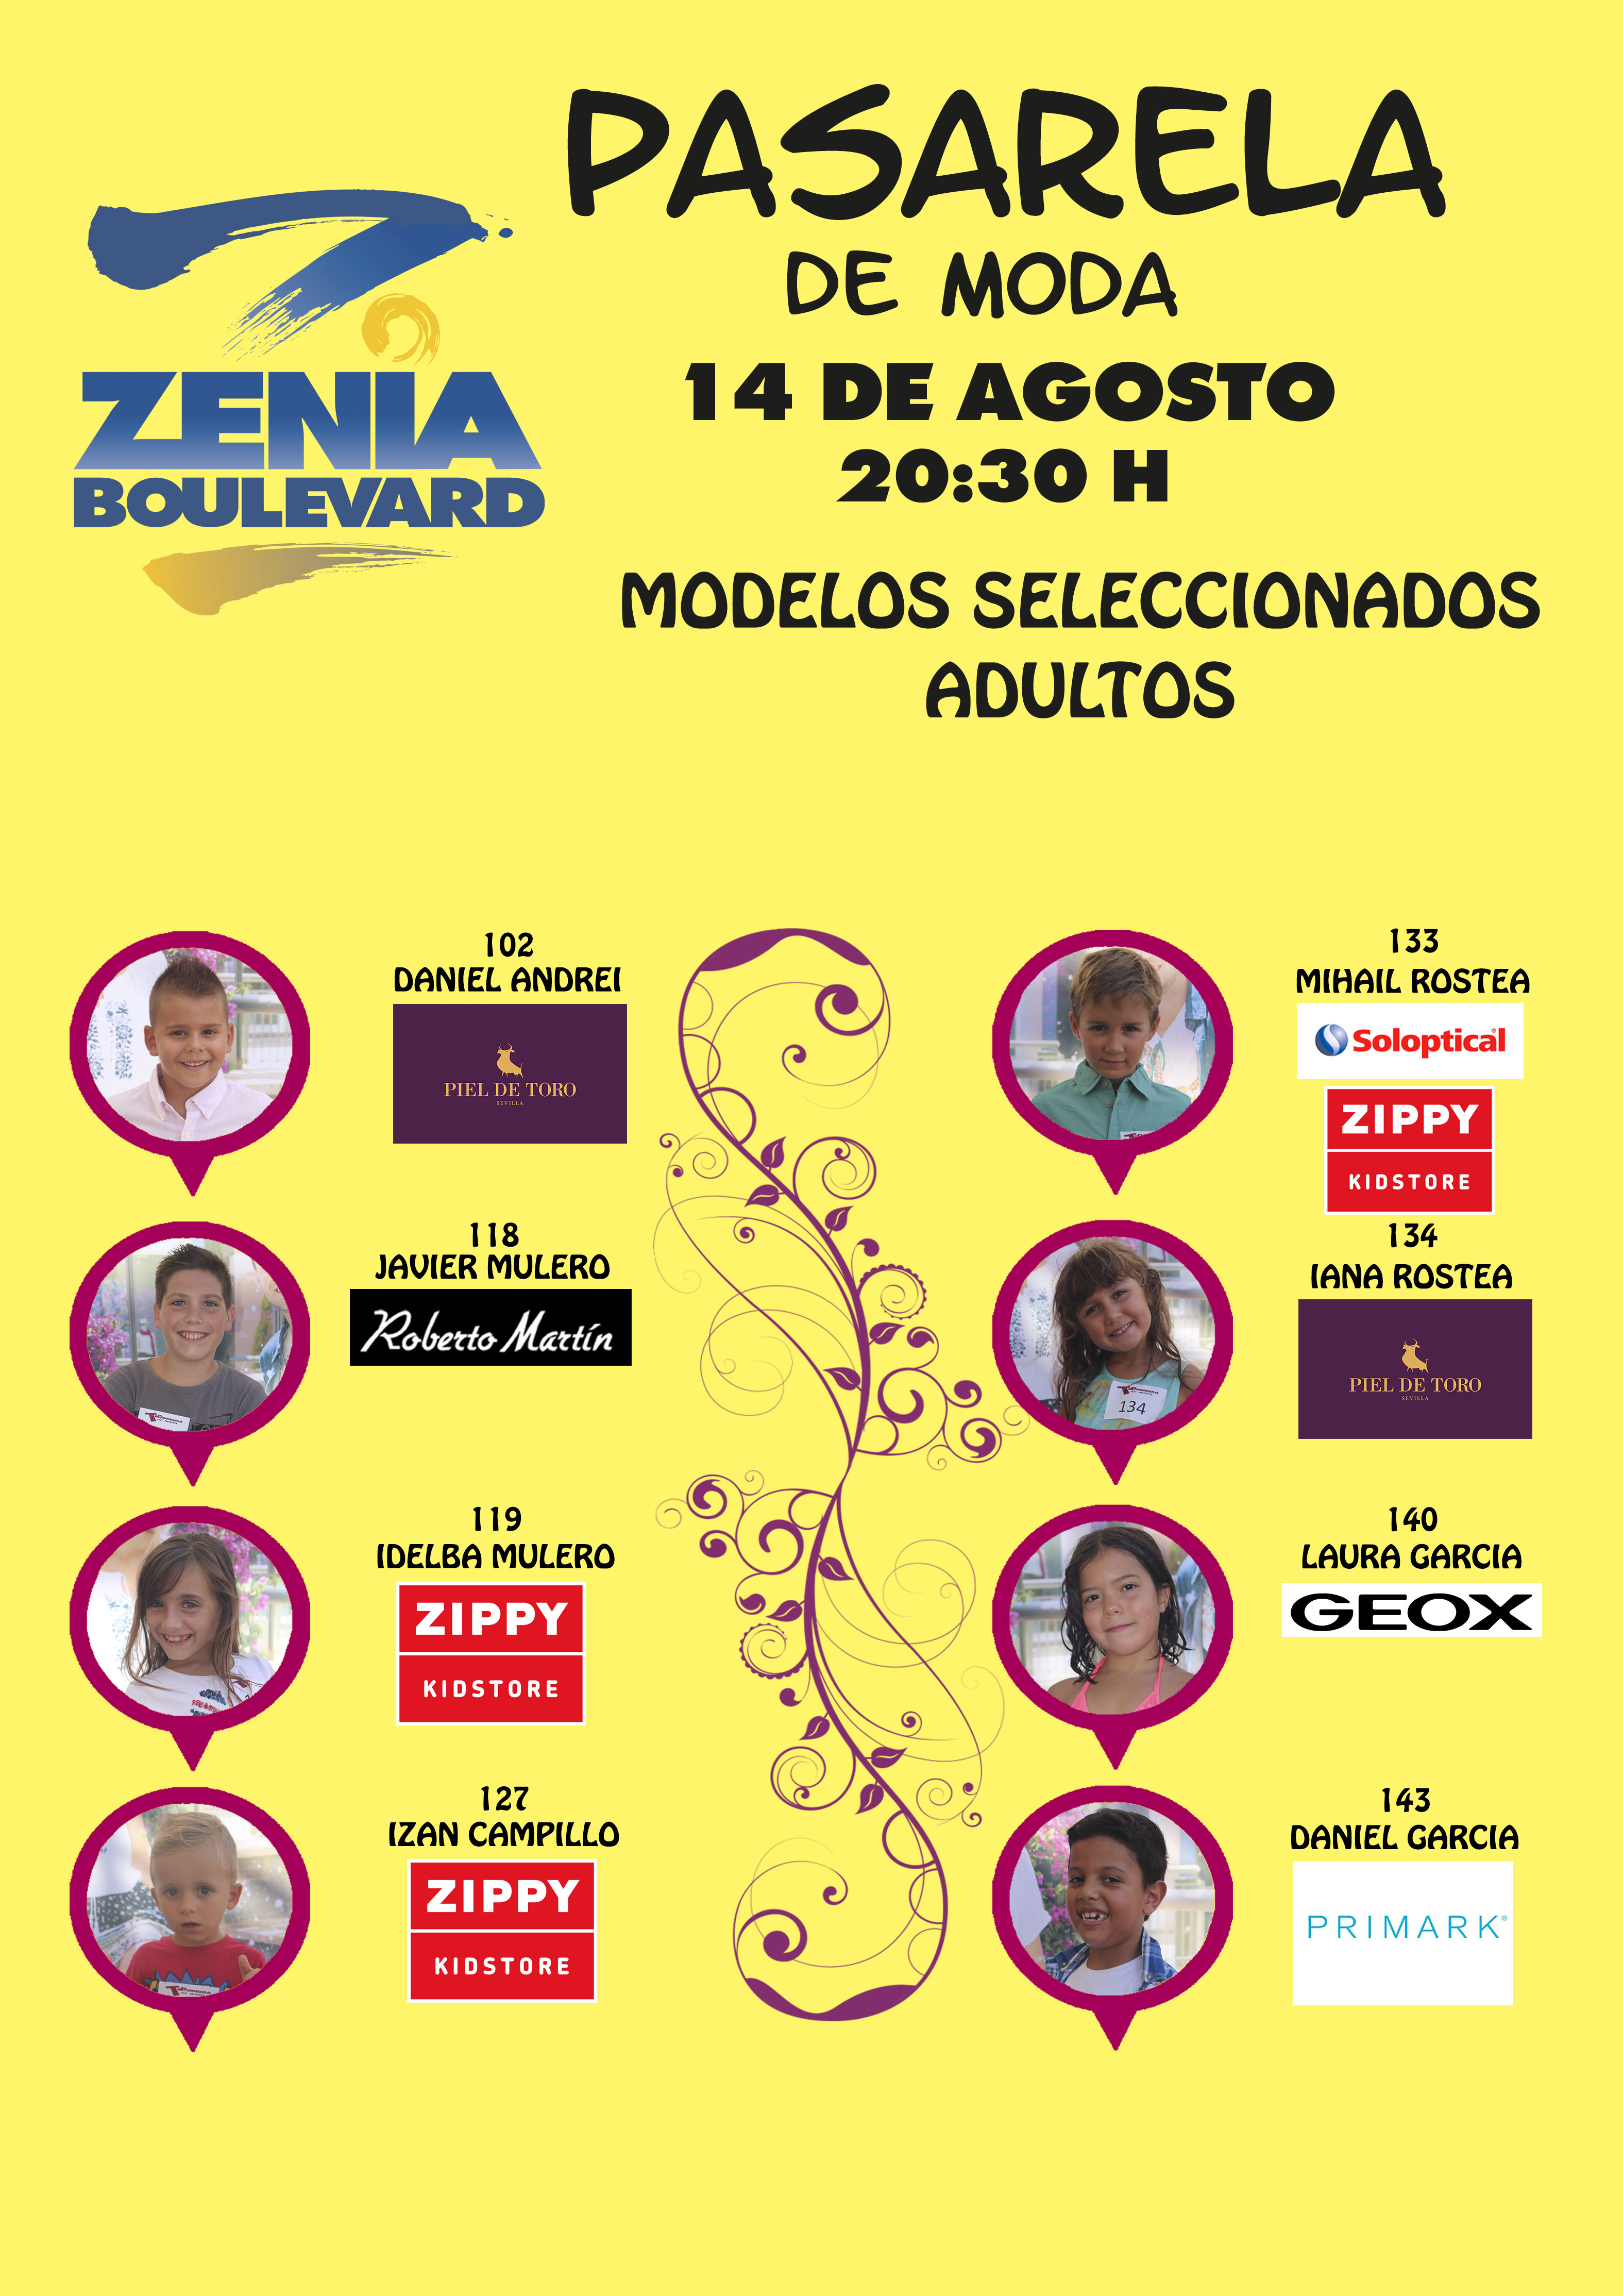 zenia personals The leader newspaper edition 725 15/07/2018 lopez bas insists that he is the man for orihuela 15/07/2018 police threaten to take their children to work 15/07/2018.